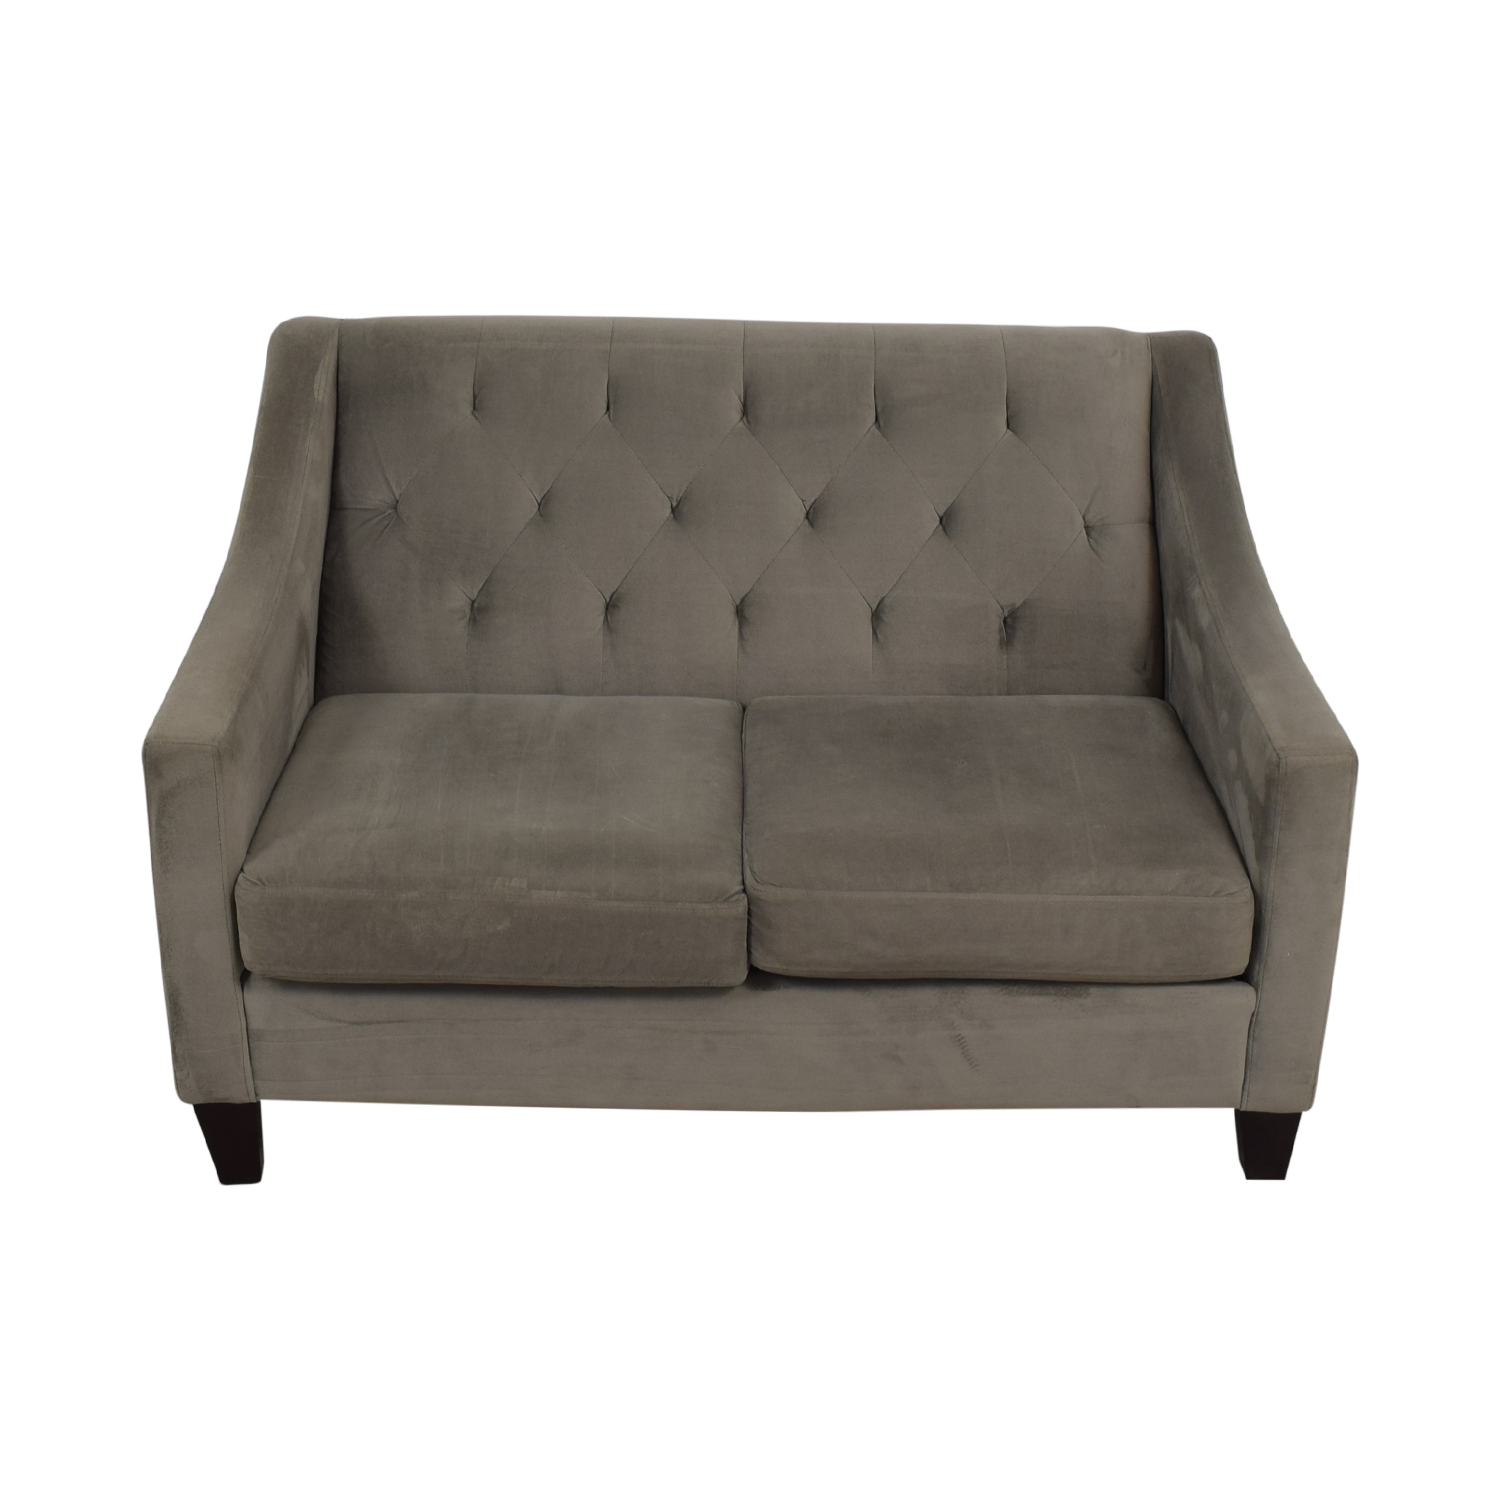 Macy's Macy's Grey Tufted Love Seat second hand